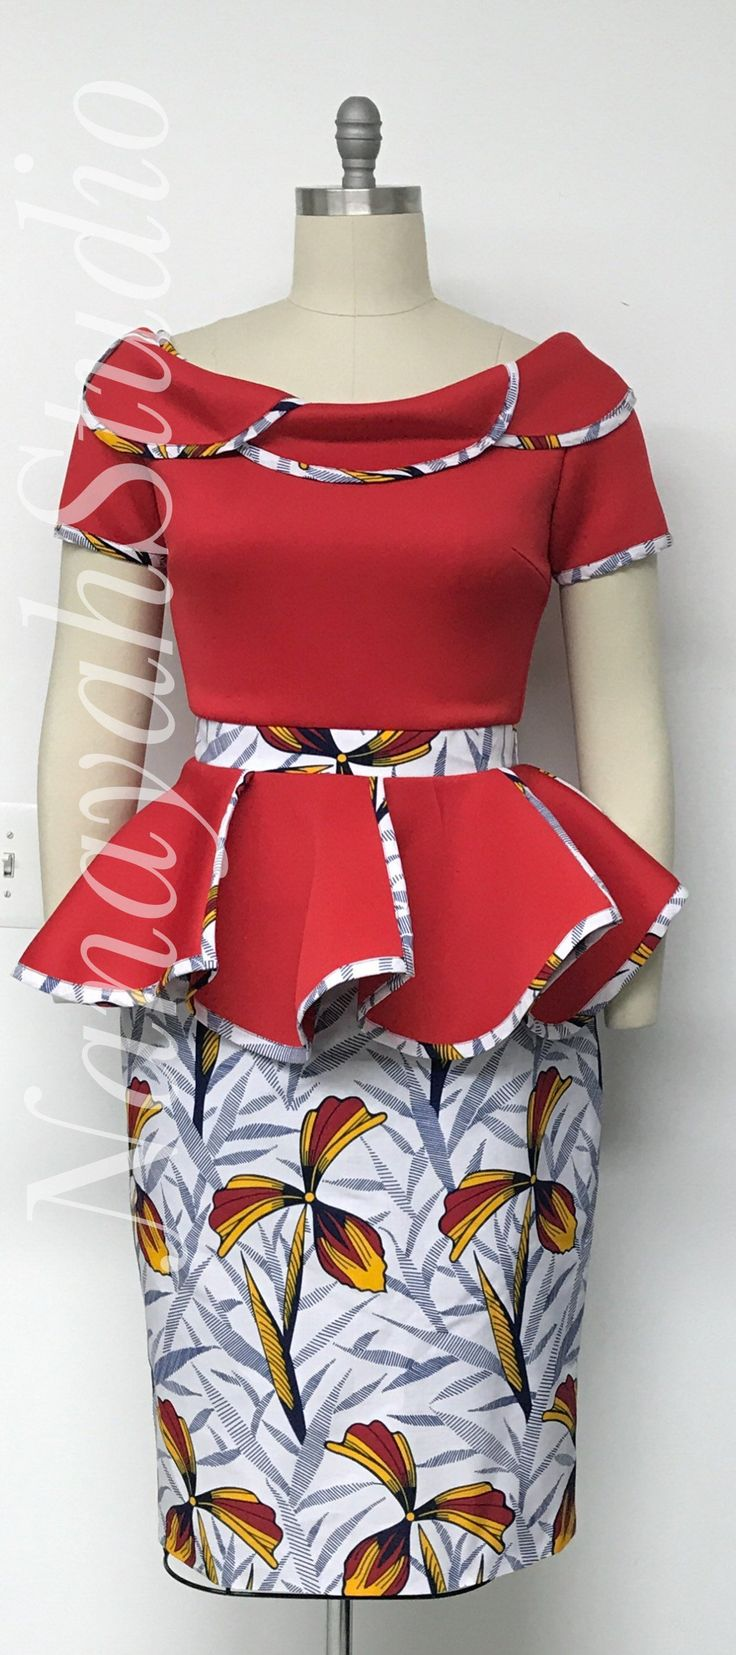 AYALUX 2019 Collection. African Print Scuba Neoprene Two Piece Petal Peplum Top. Pencil Skirt. Handmade. Red Navy Yellow White